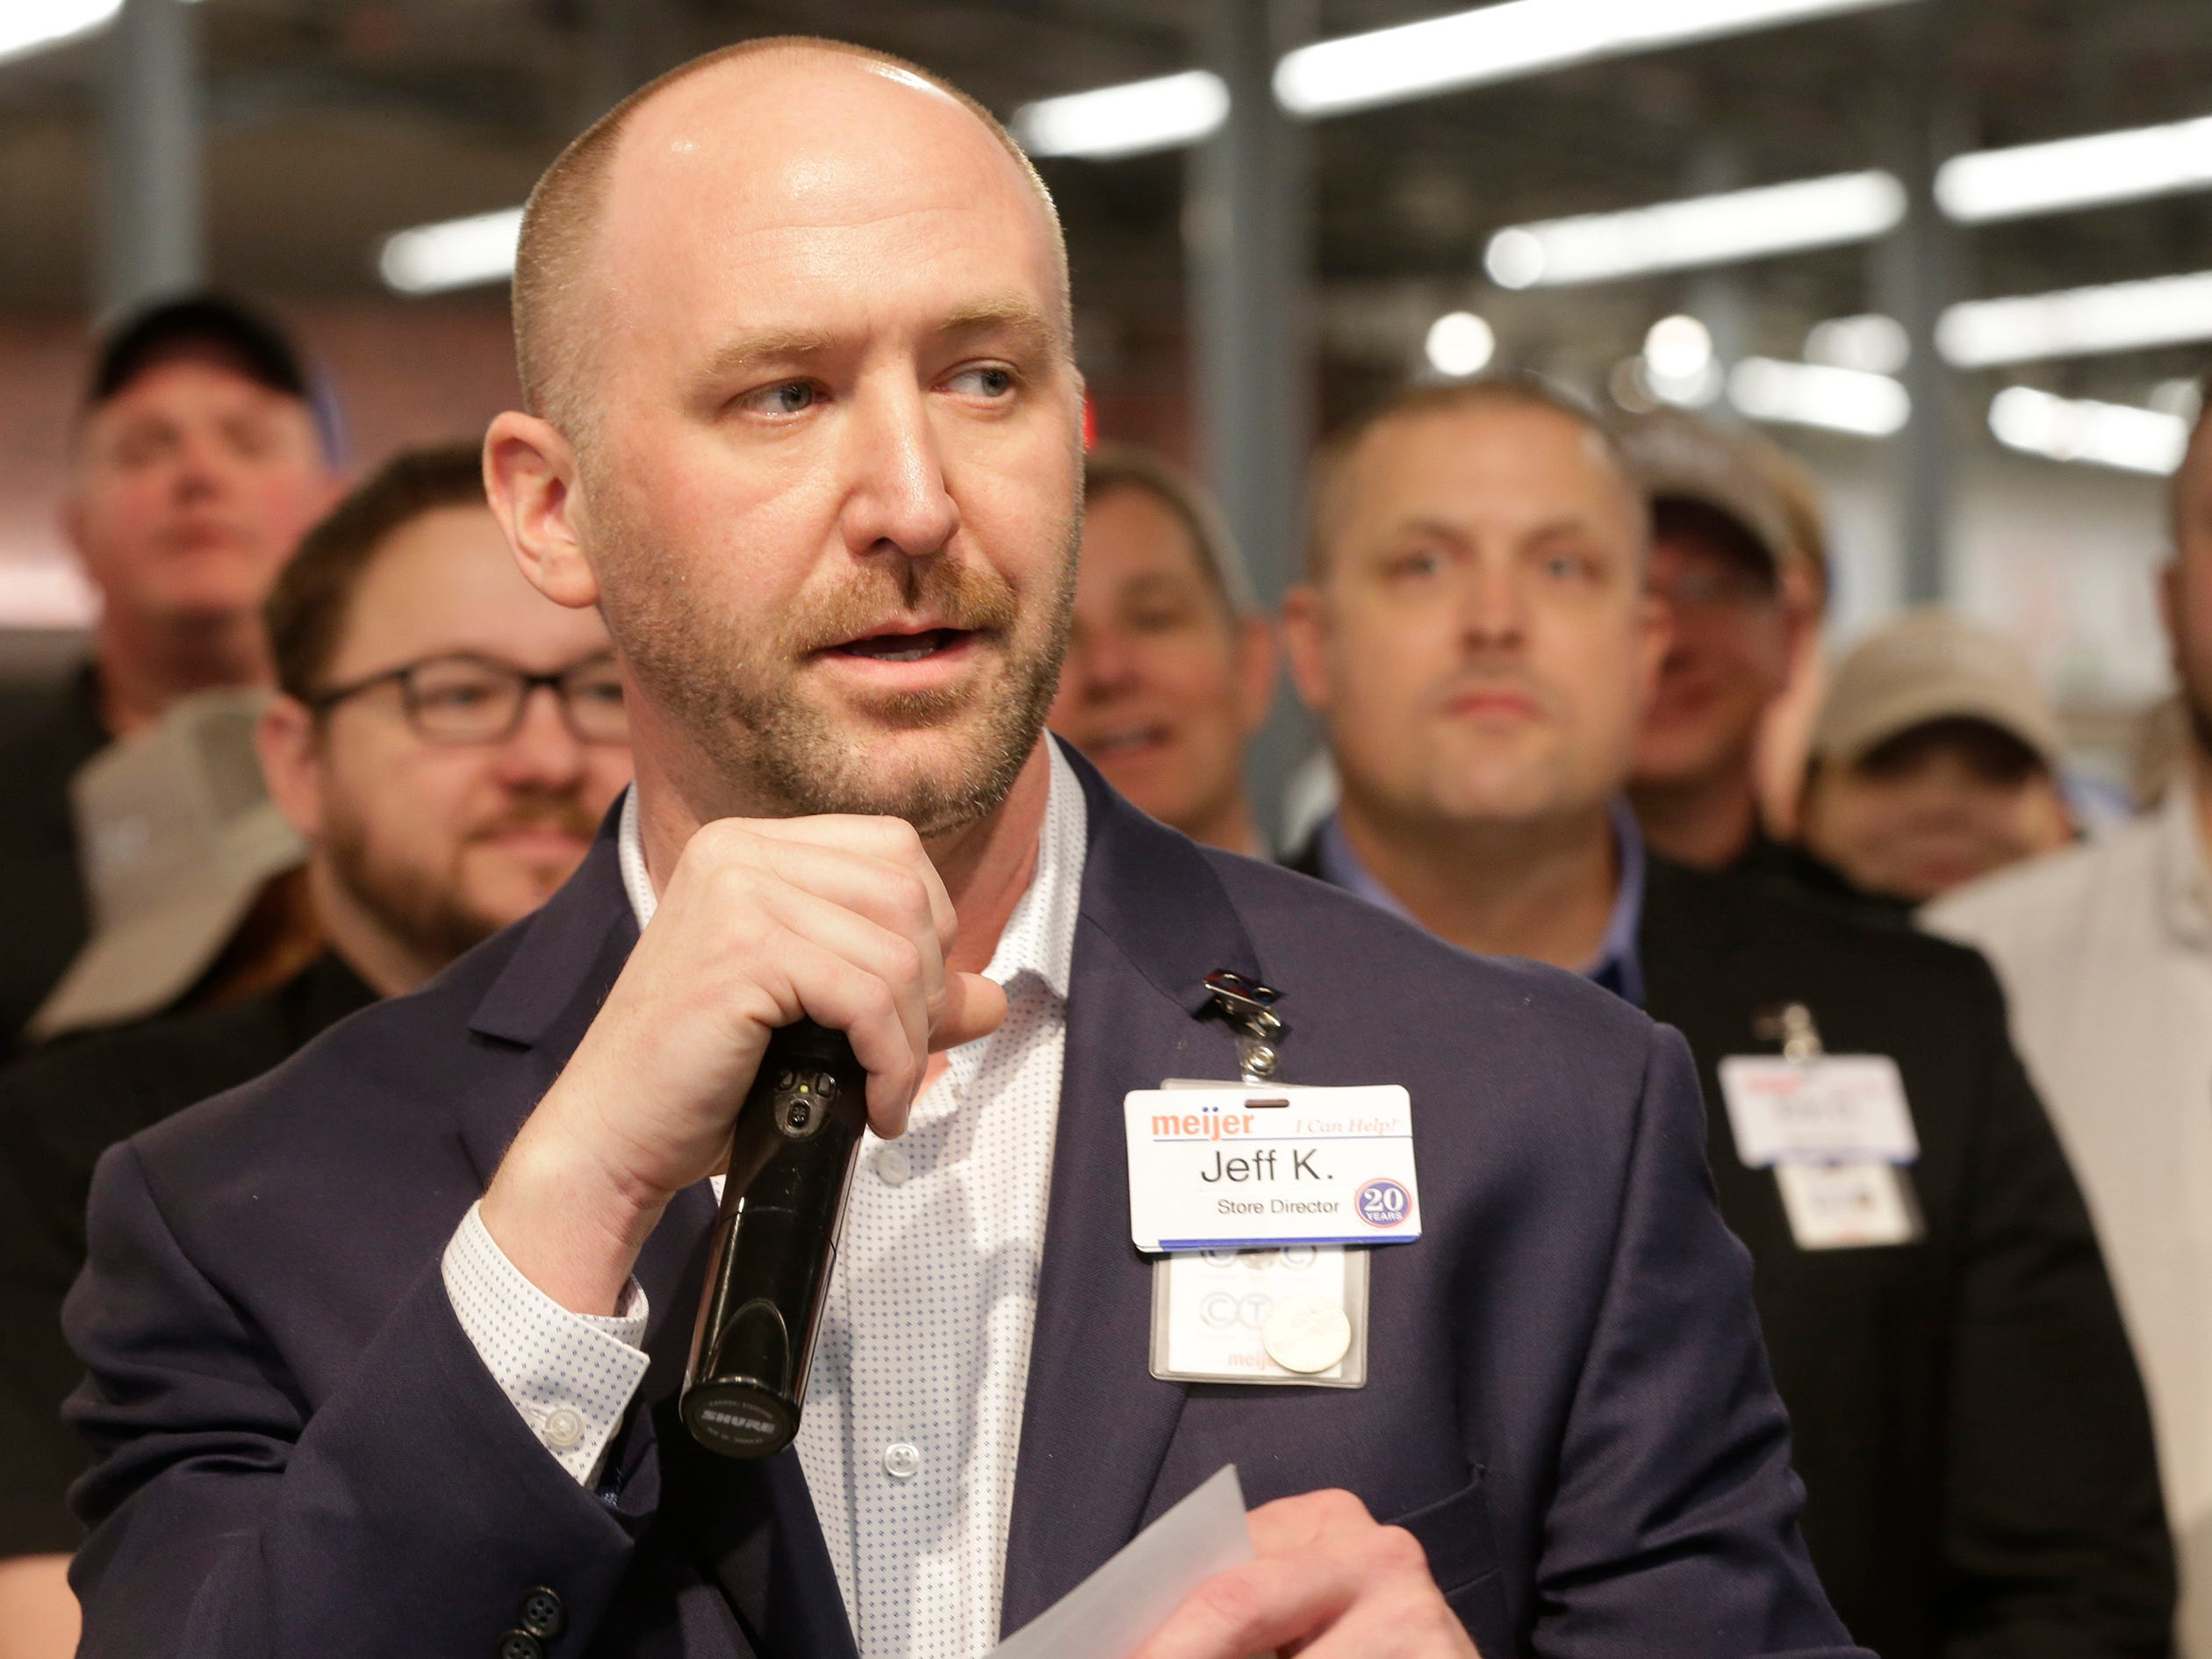 Sheboygan Store Director Jeff Kietzman speaks during the ribbon cutting at Meijer, Thursday April 25, 2019, in Sheboygan, Wis. The 155,000-square-foot supercenter has 300 employees on opening day.